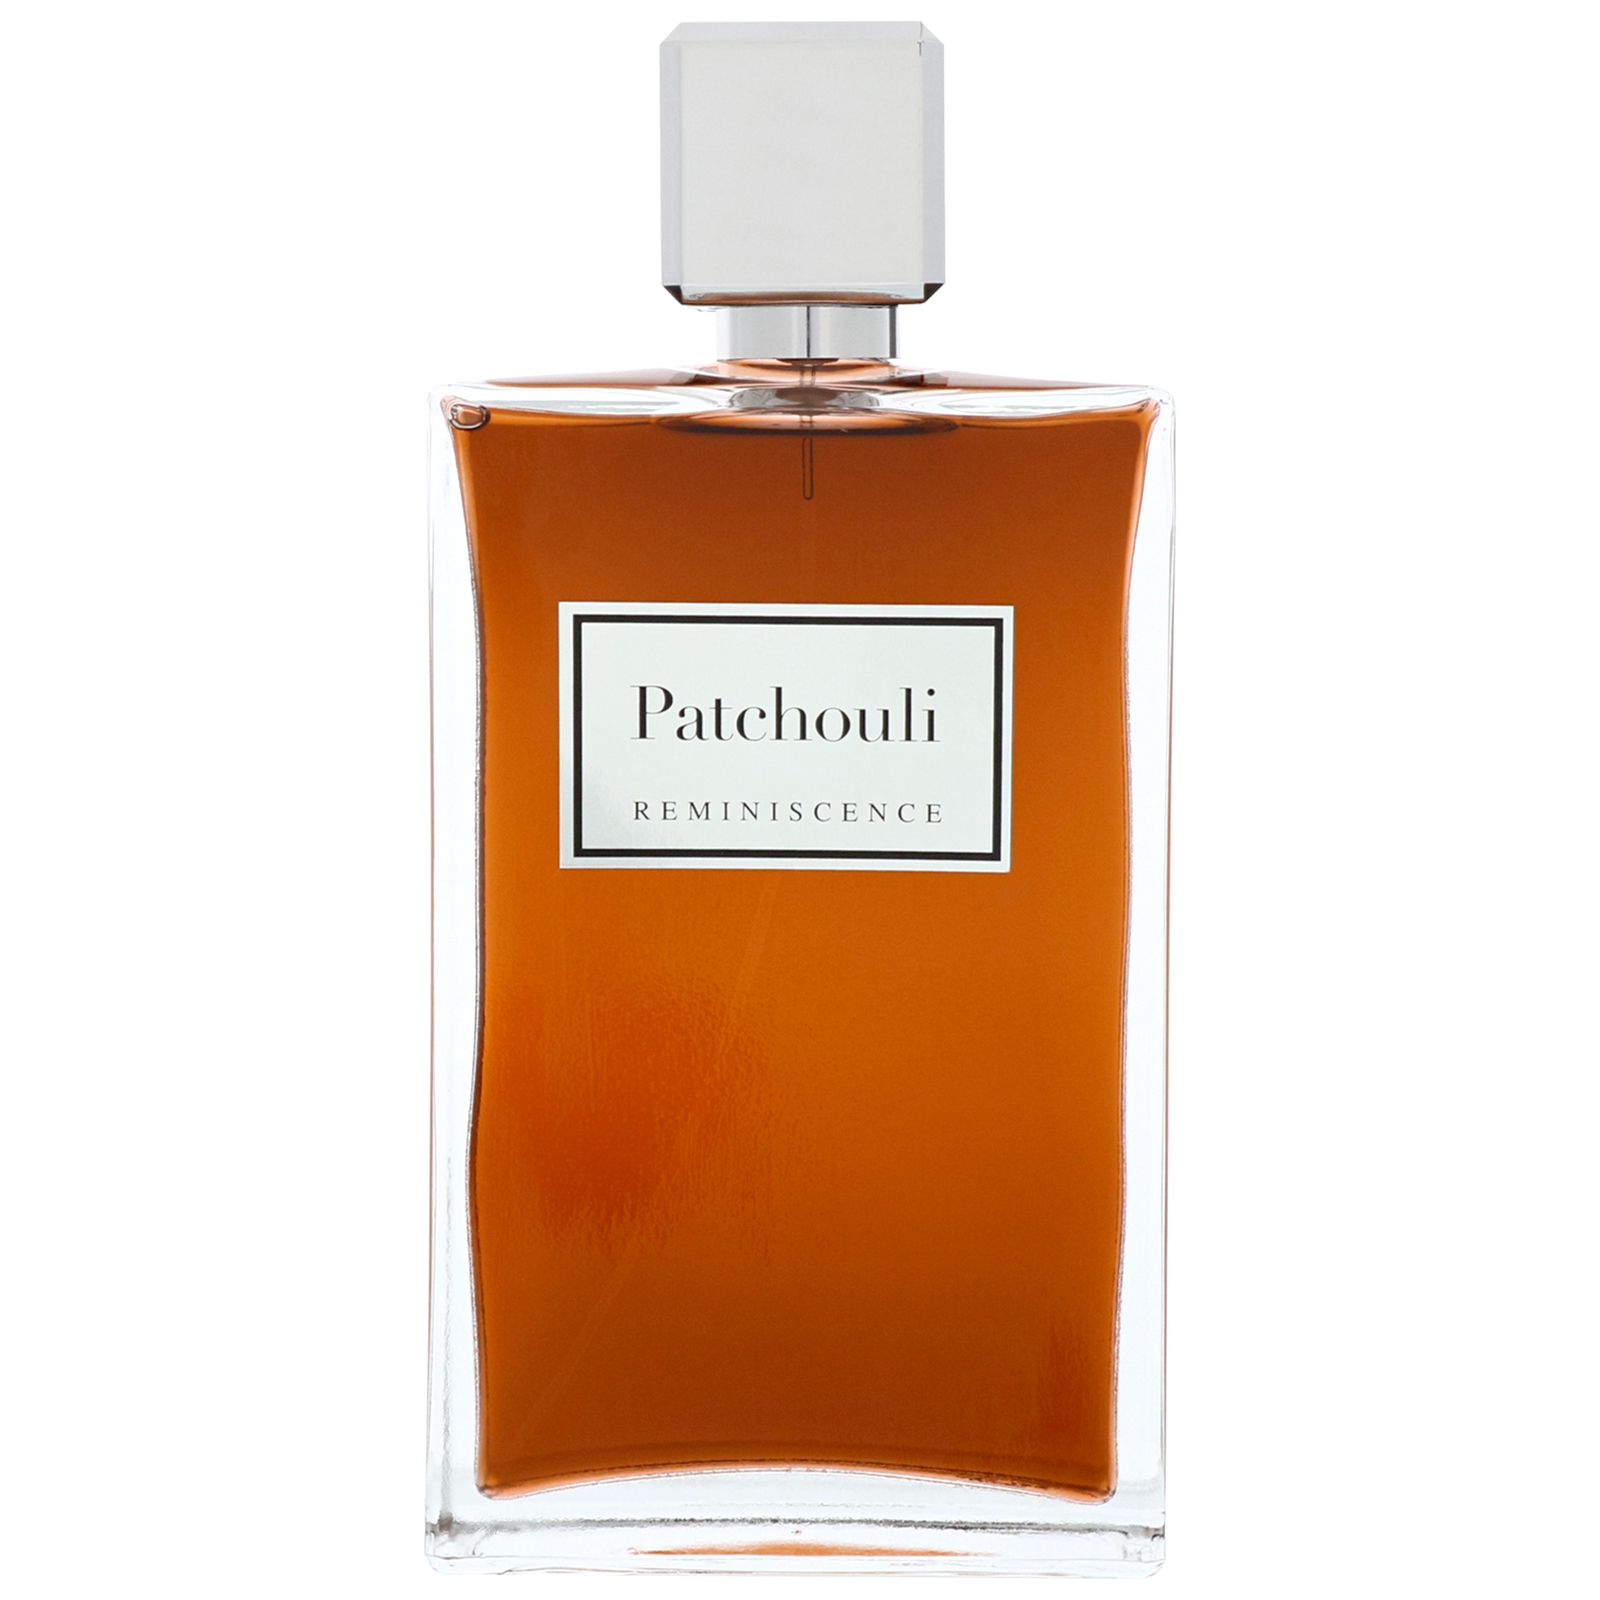 Reminiscence Patchouli Pour Femme Eau de Toilette Spray 100ml